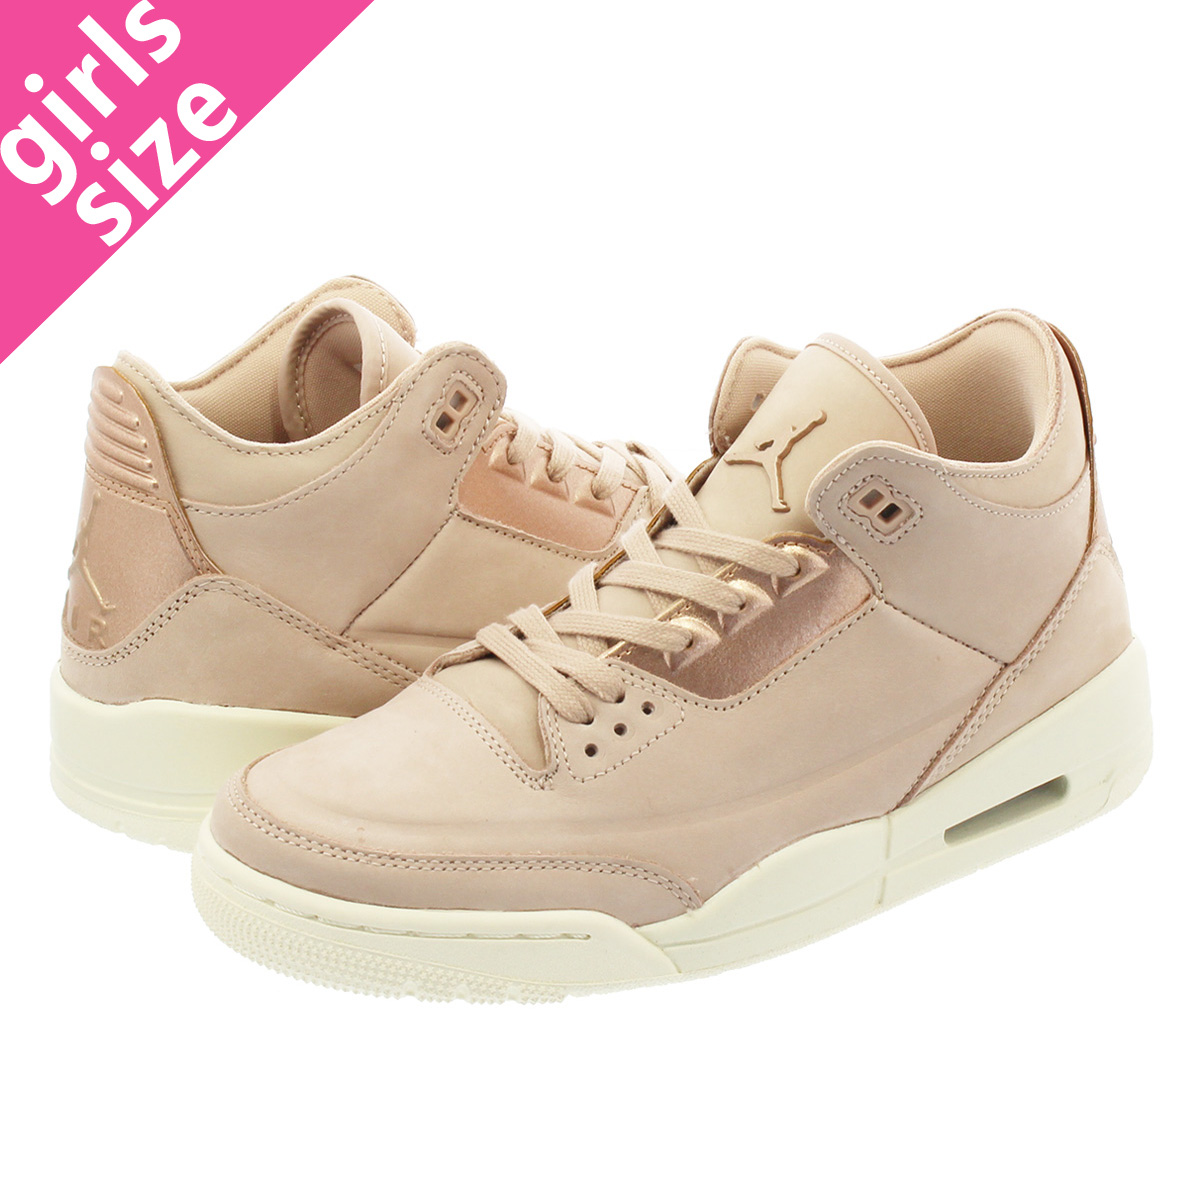 844cf8336cb5aa NIKE WMNS AIR JORDAN 3 RETRO SE Nike women Air Jordan 3 nostalgic PARTICLE  BEIGE METALLIC RED BRONZE SAIL ah7859-205